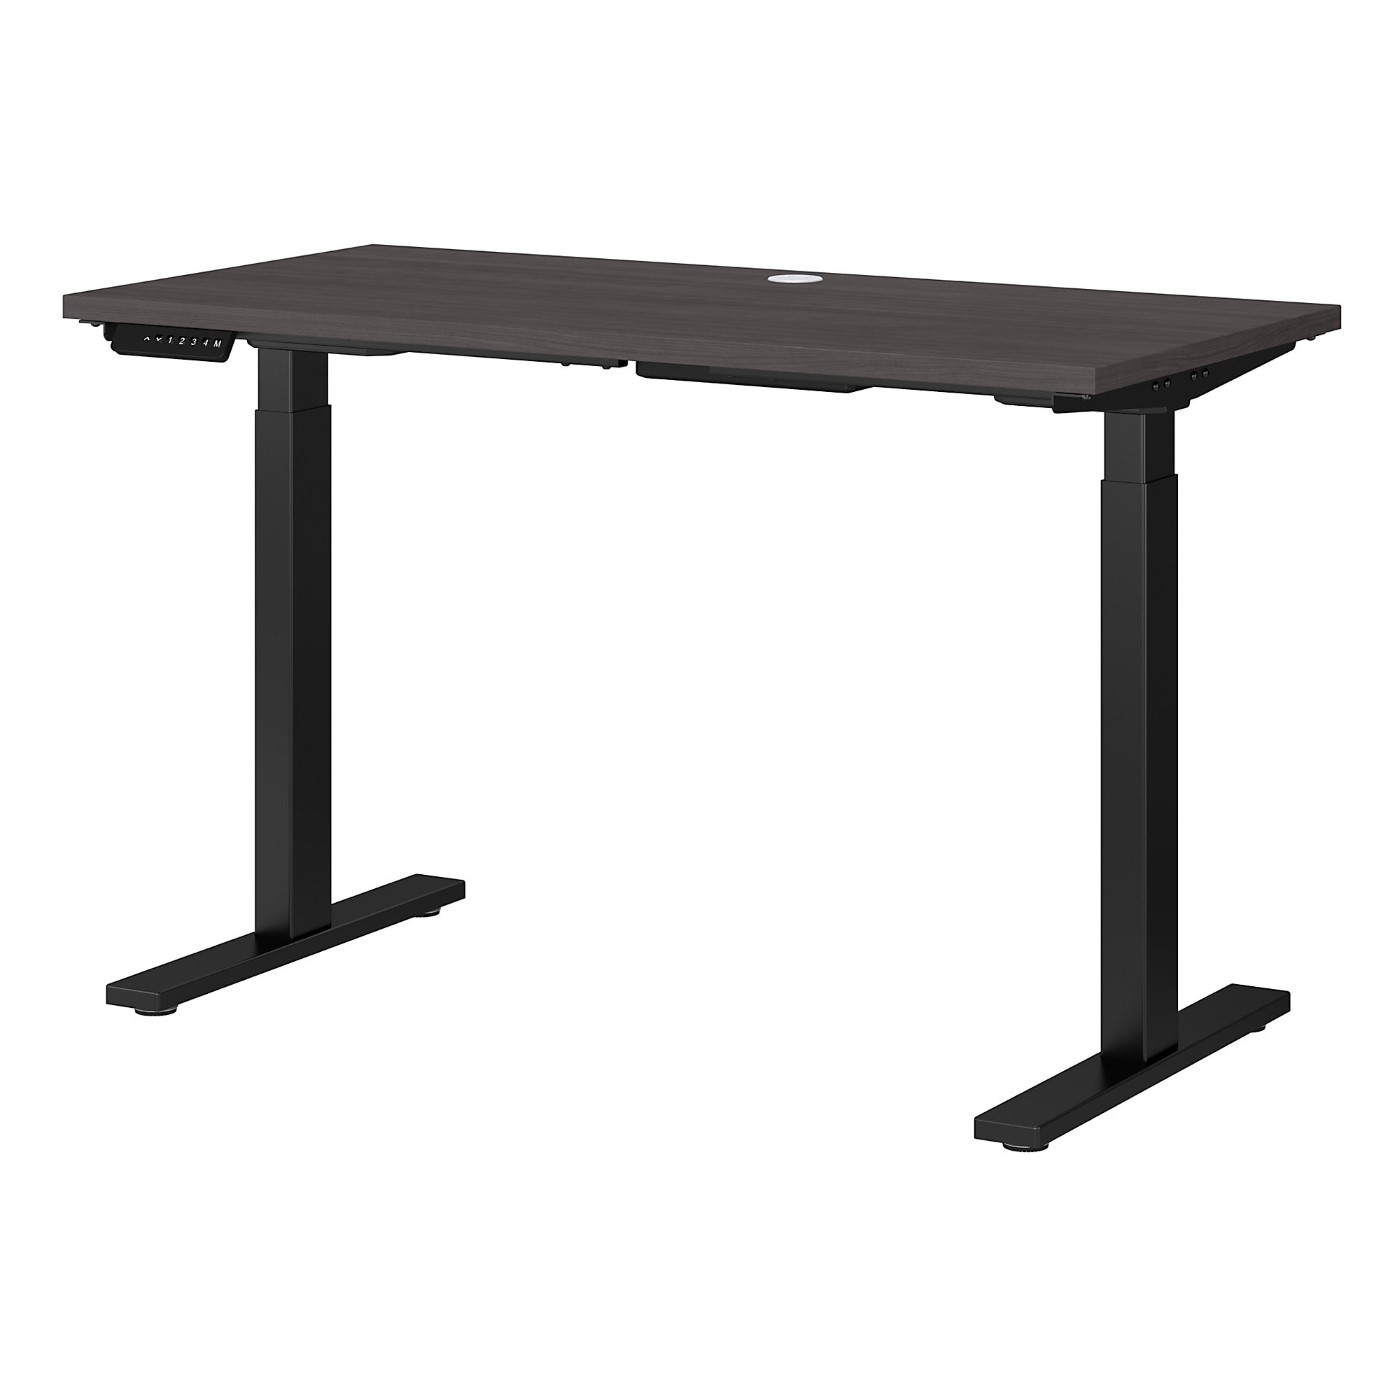 MOVE 60 SERIES BY BUSH BUSINESS FURNITURE 48W X 24D HEIGHT ADJUSTABLE STANDING DESK. FREE SHIPPING